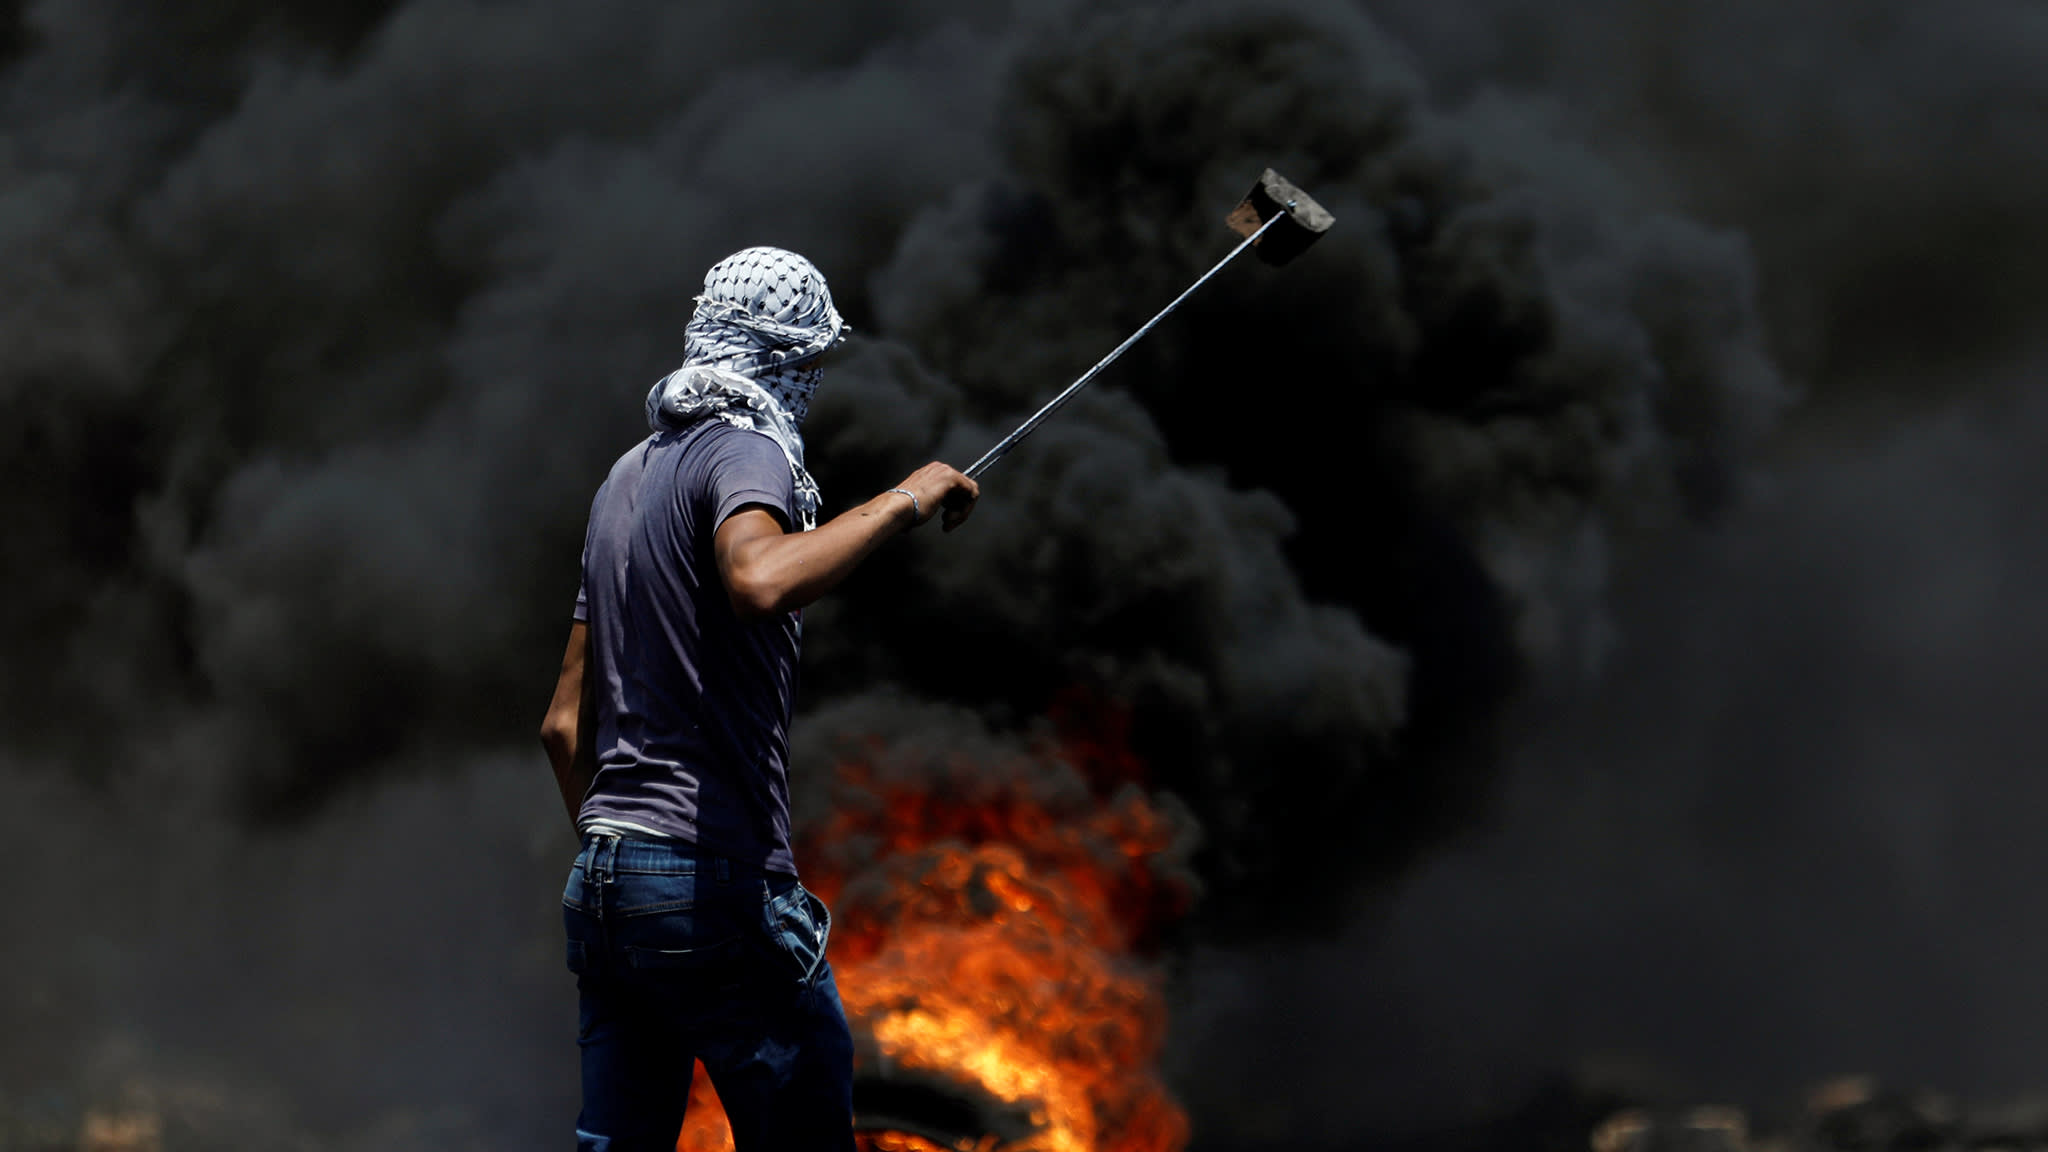 Disillusioned Palestinians wary of new uprising in West Bank